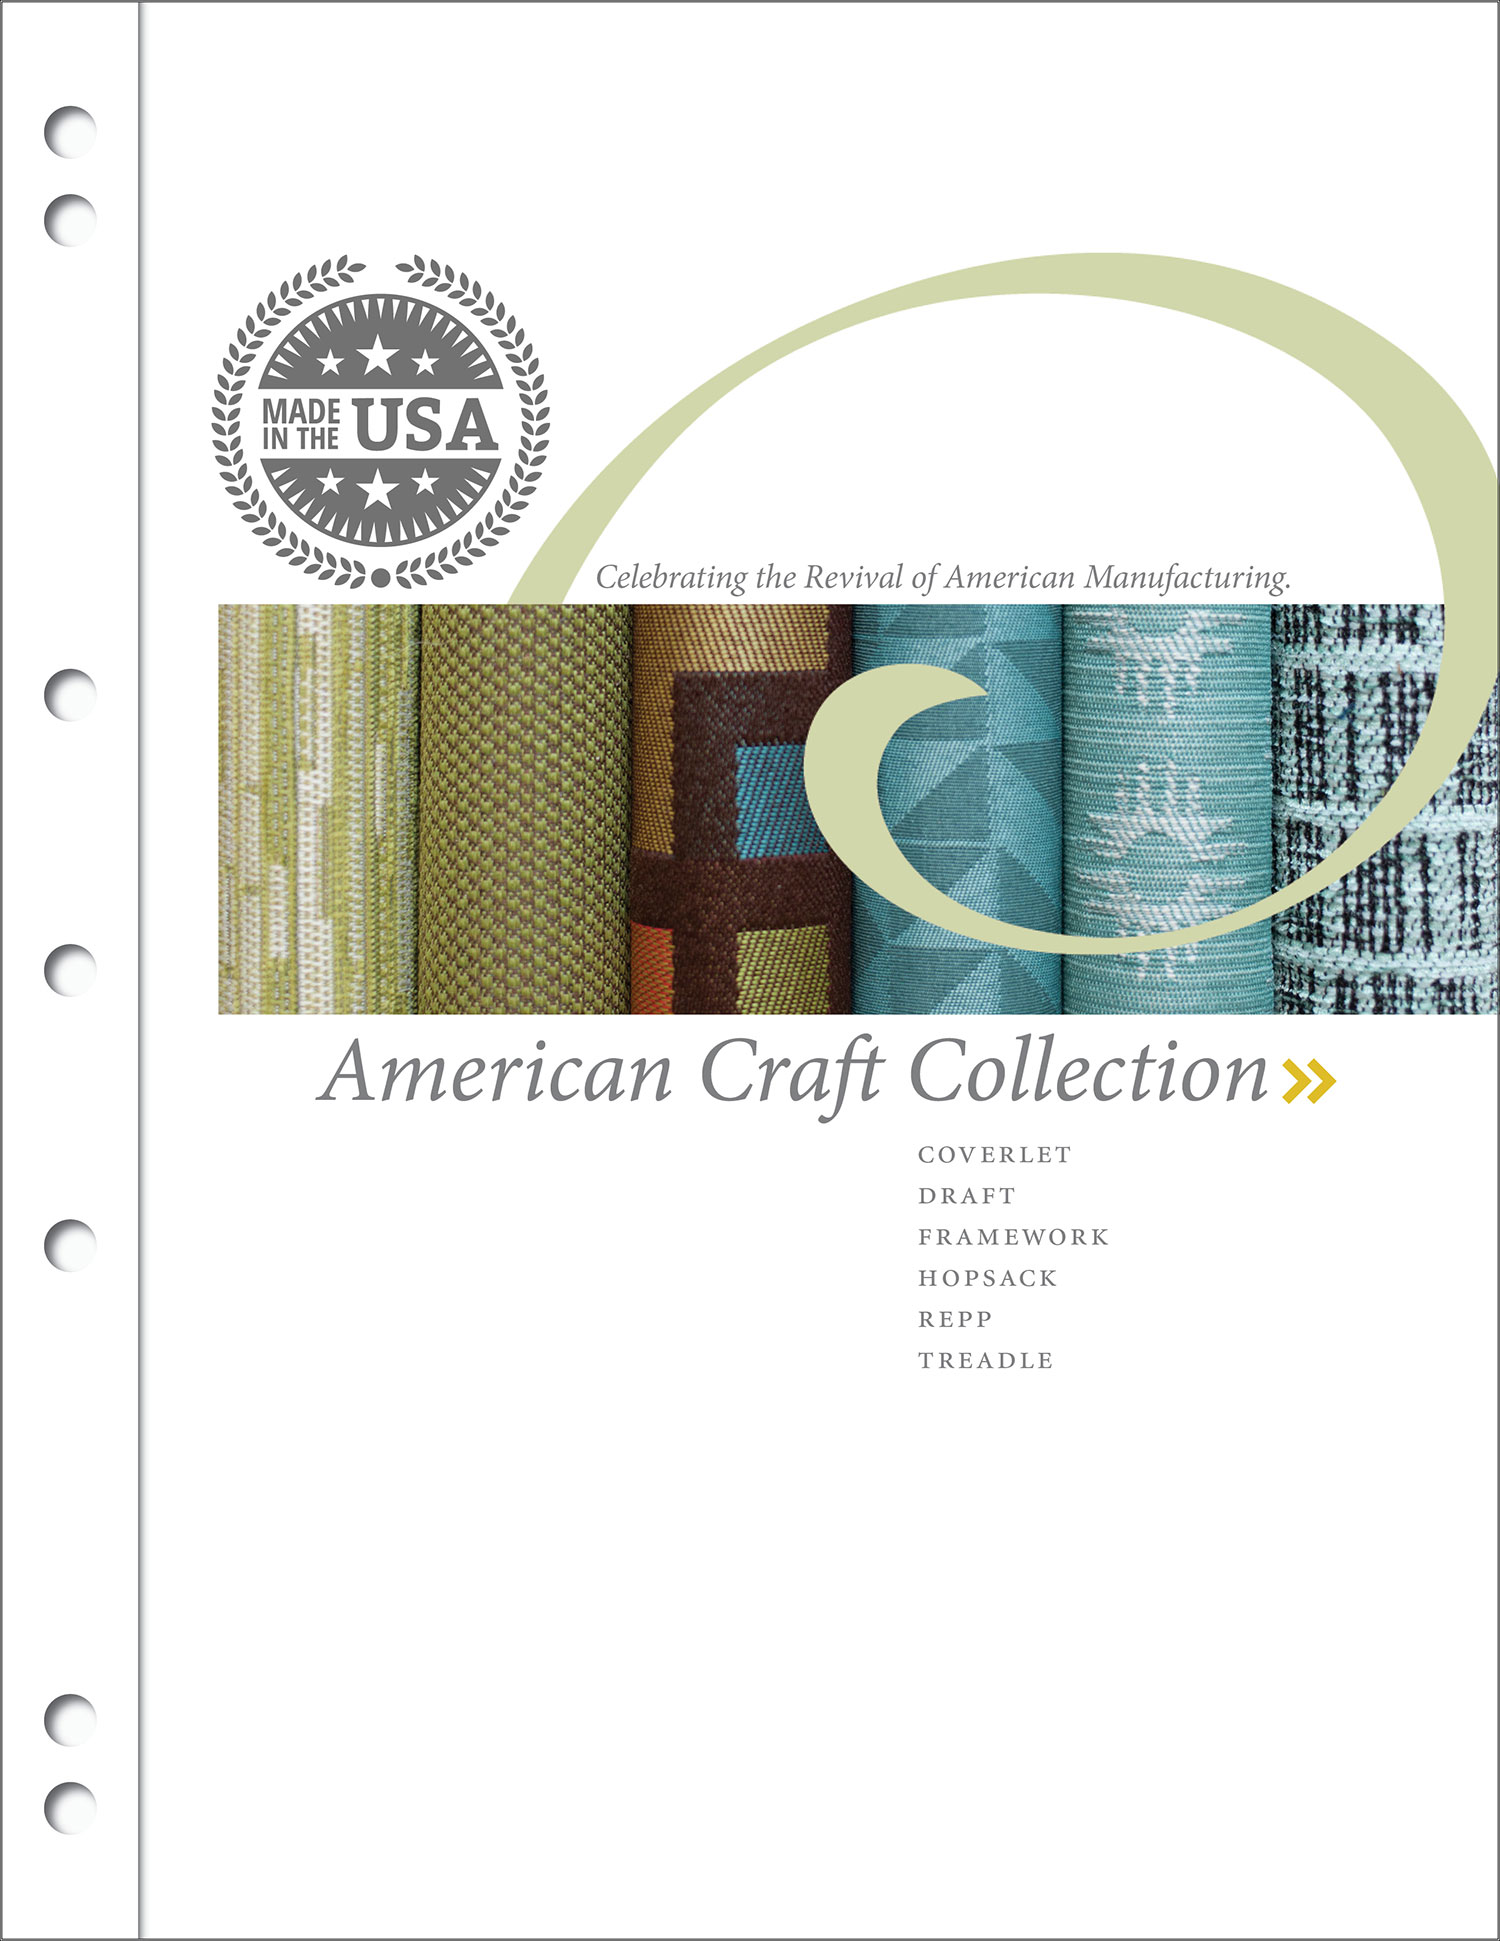 American-Craft-Collection-Card-Image.jpg